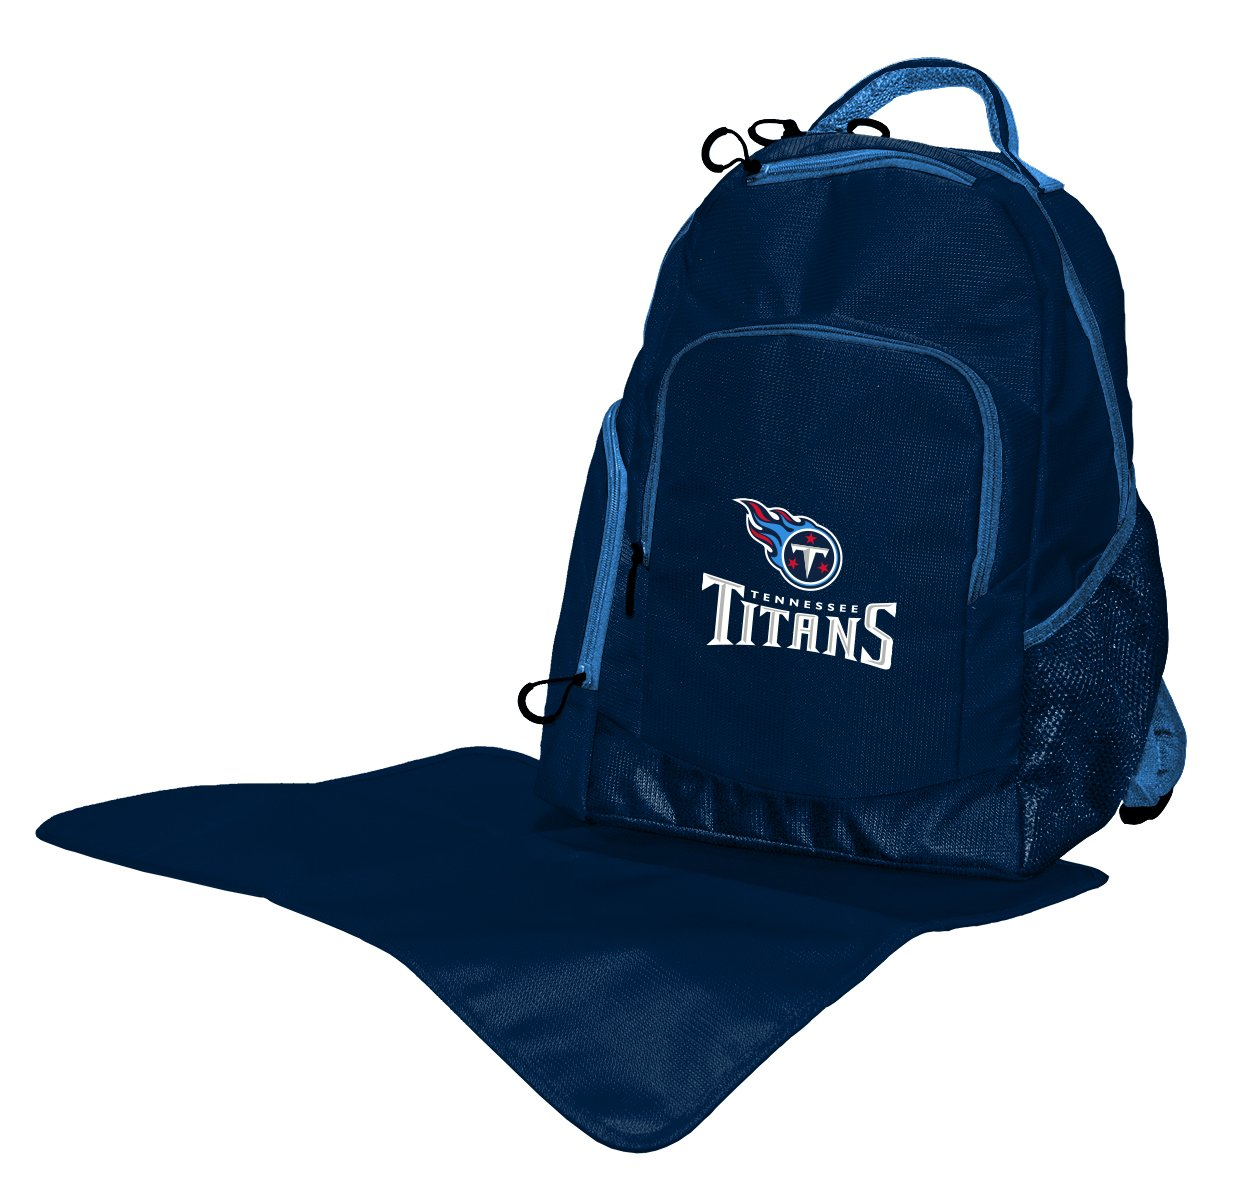 LilファンDiaperバックパックNFLコレクション B00ULNH23O   Tennessee Titans